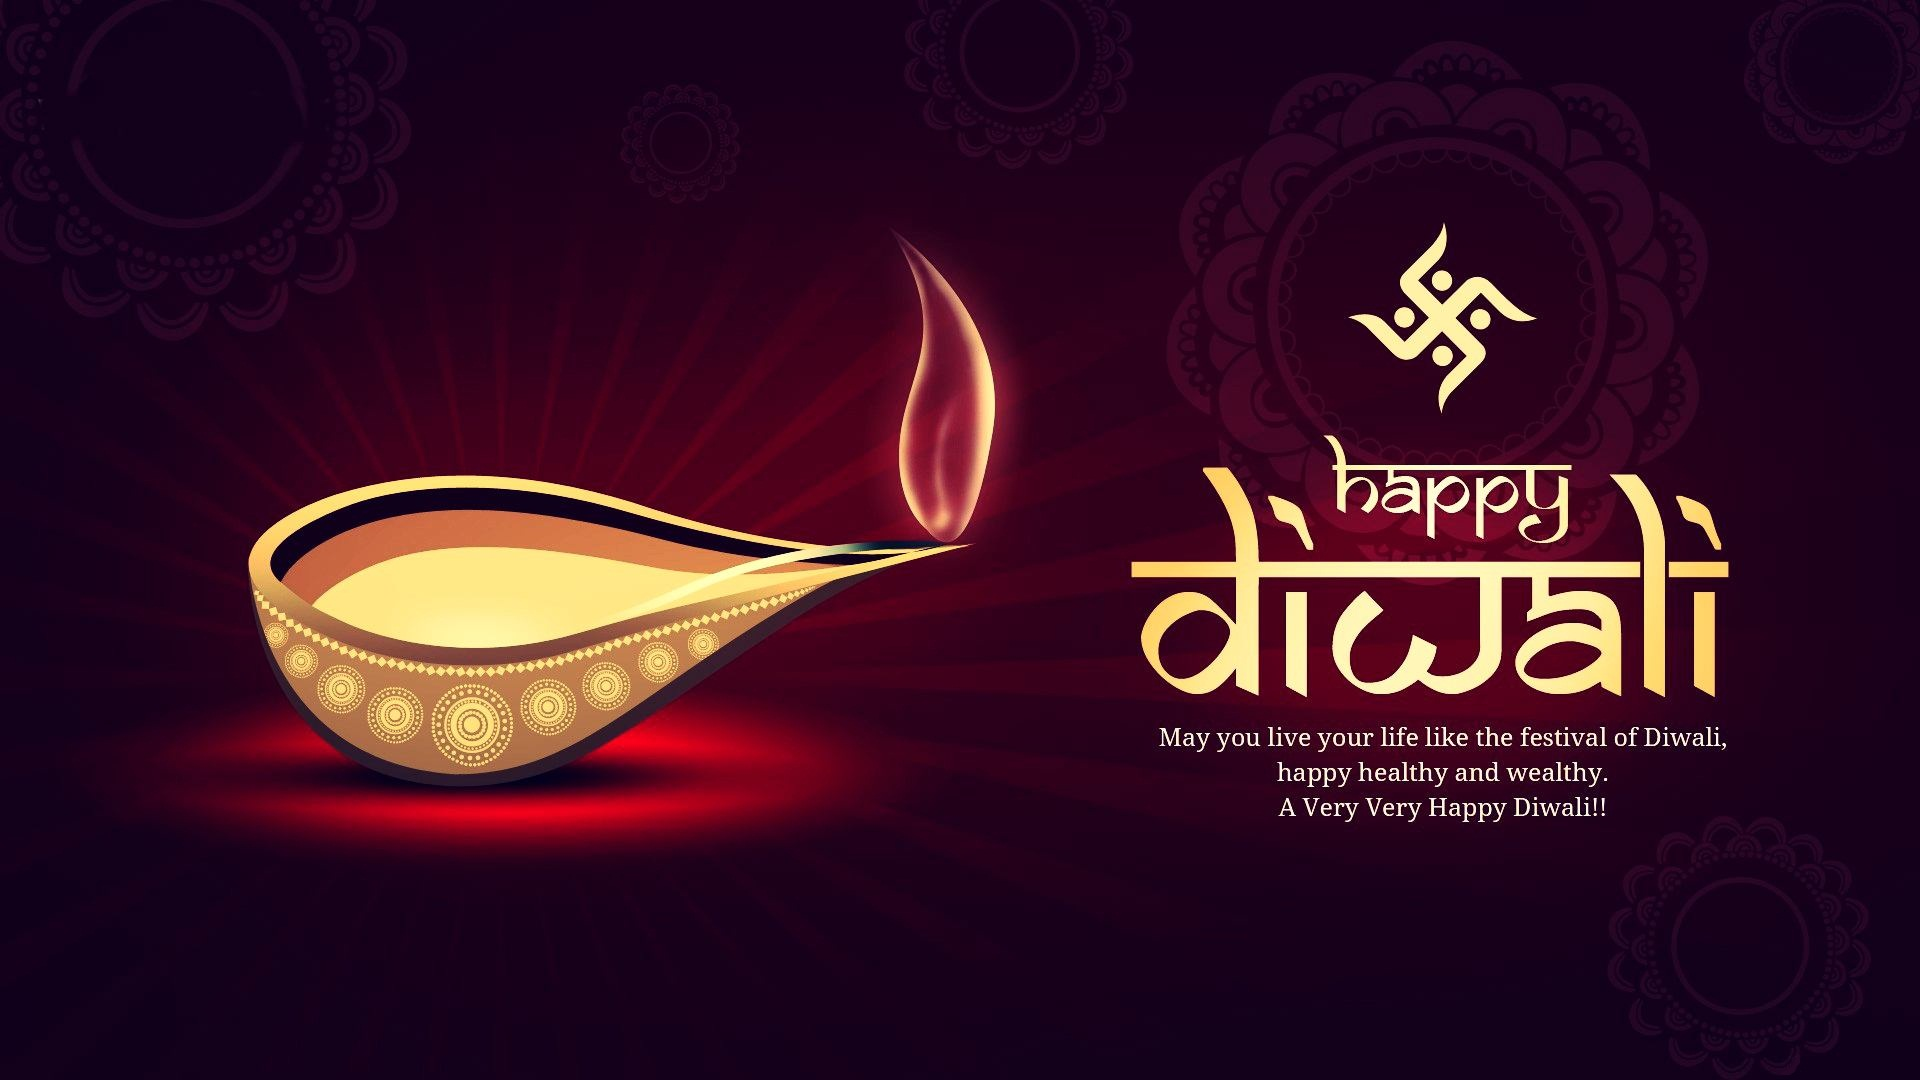 Happy Diwali And New Year Wallpapers: Happy Diwali Happy New Year Posters